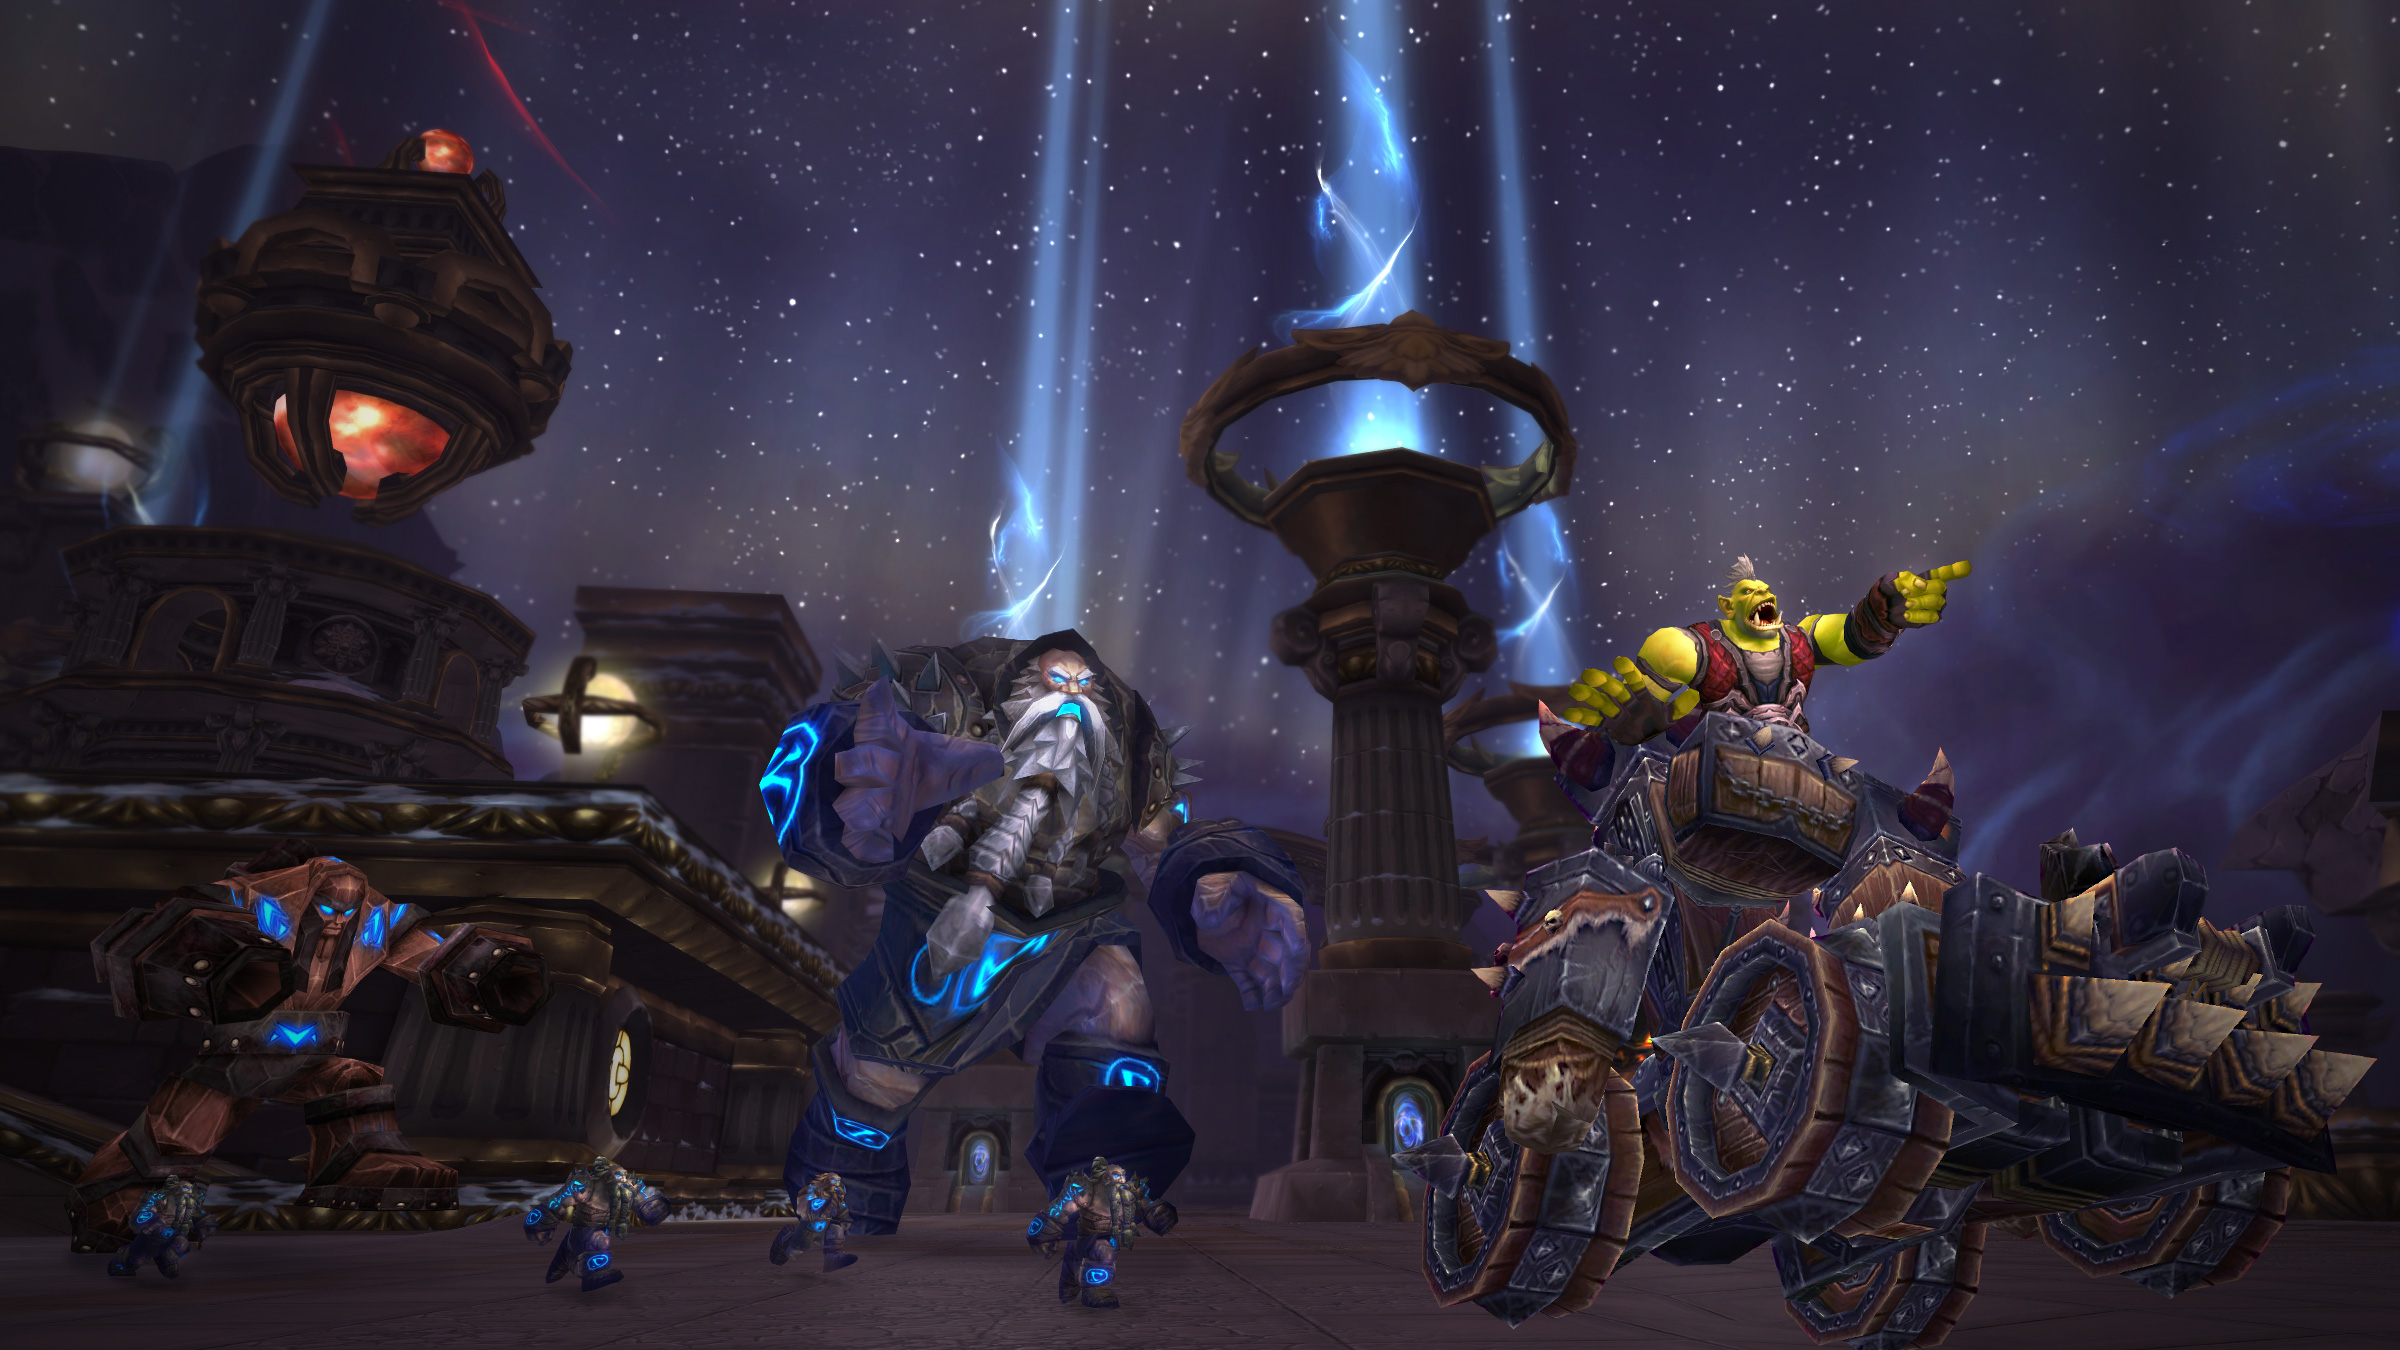 Wrath of the Lich King Timewalking is Back! March 13-19